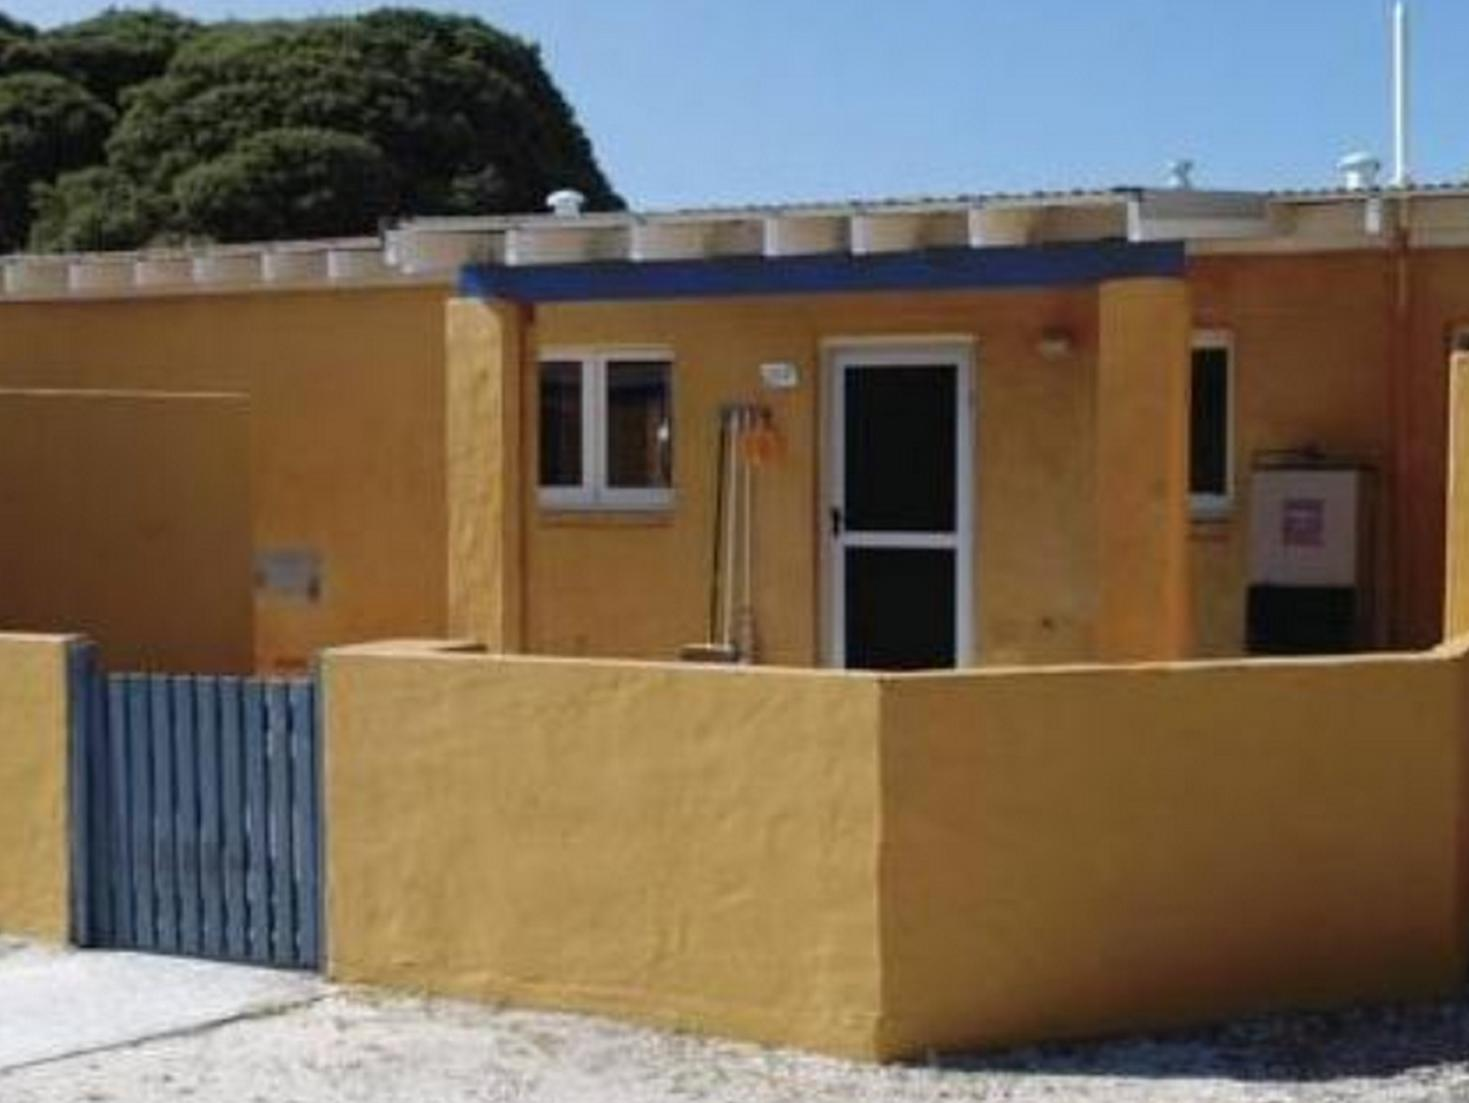 Rottnest Island Authority South Thomson Self Contained Accommodation - Hotell och Boende i Australien , Rottnest Island